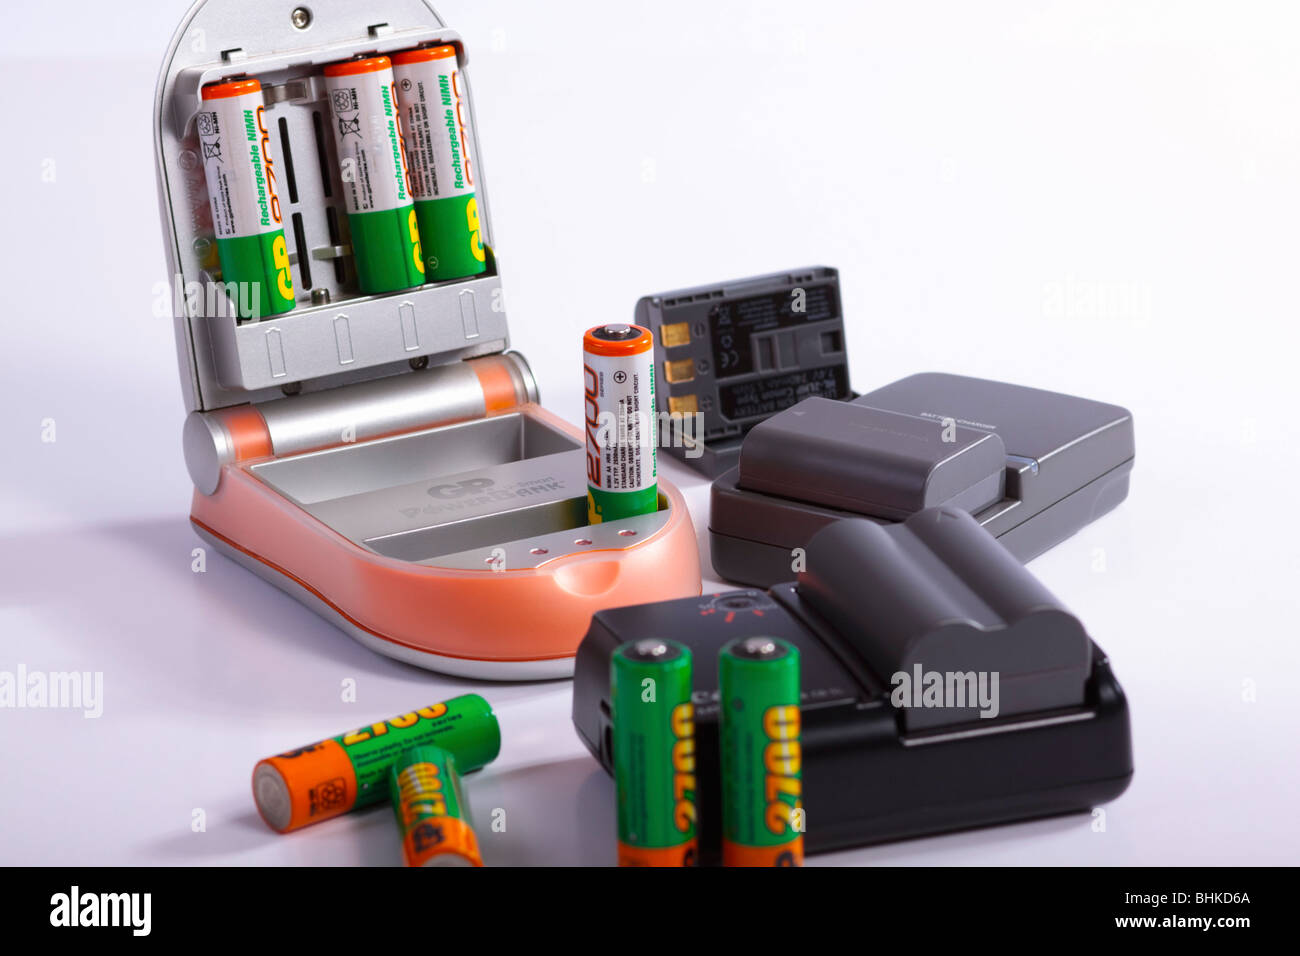 NiMH and Li-ion rechargeable batteries with chargers. Isolated. Stock Photo